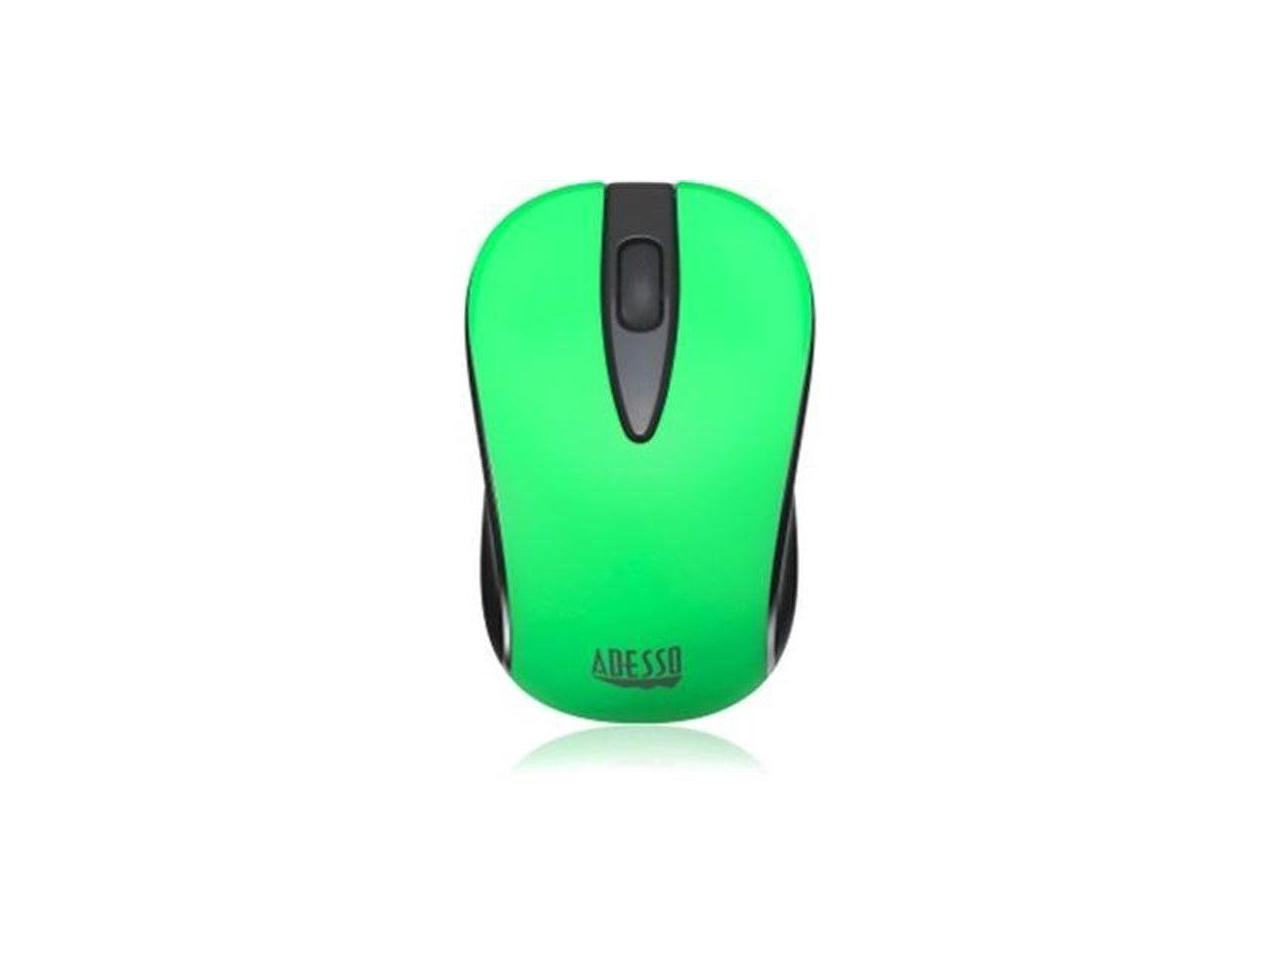 Adesso Green iMouse S70G